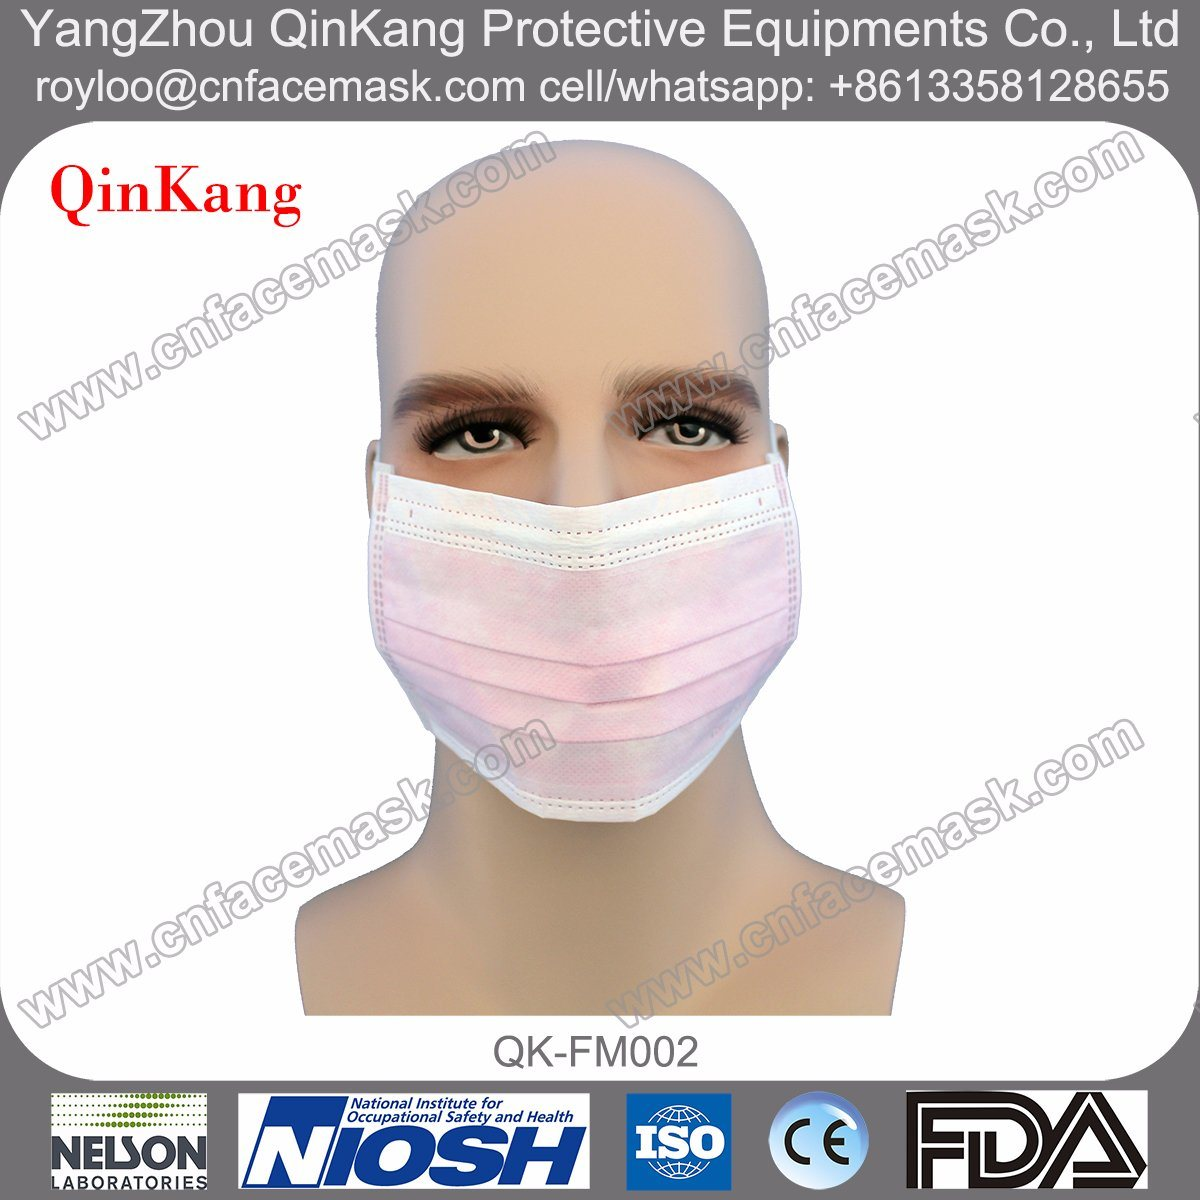 Disposable Medical Breathing Masks /Surgical Face Masks